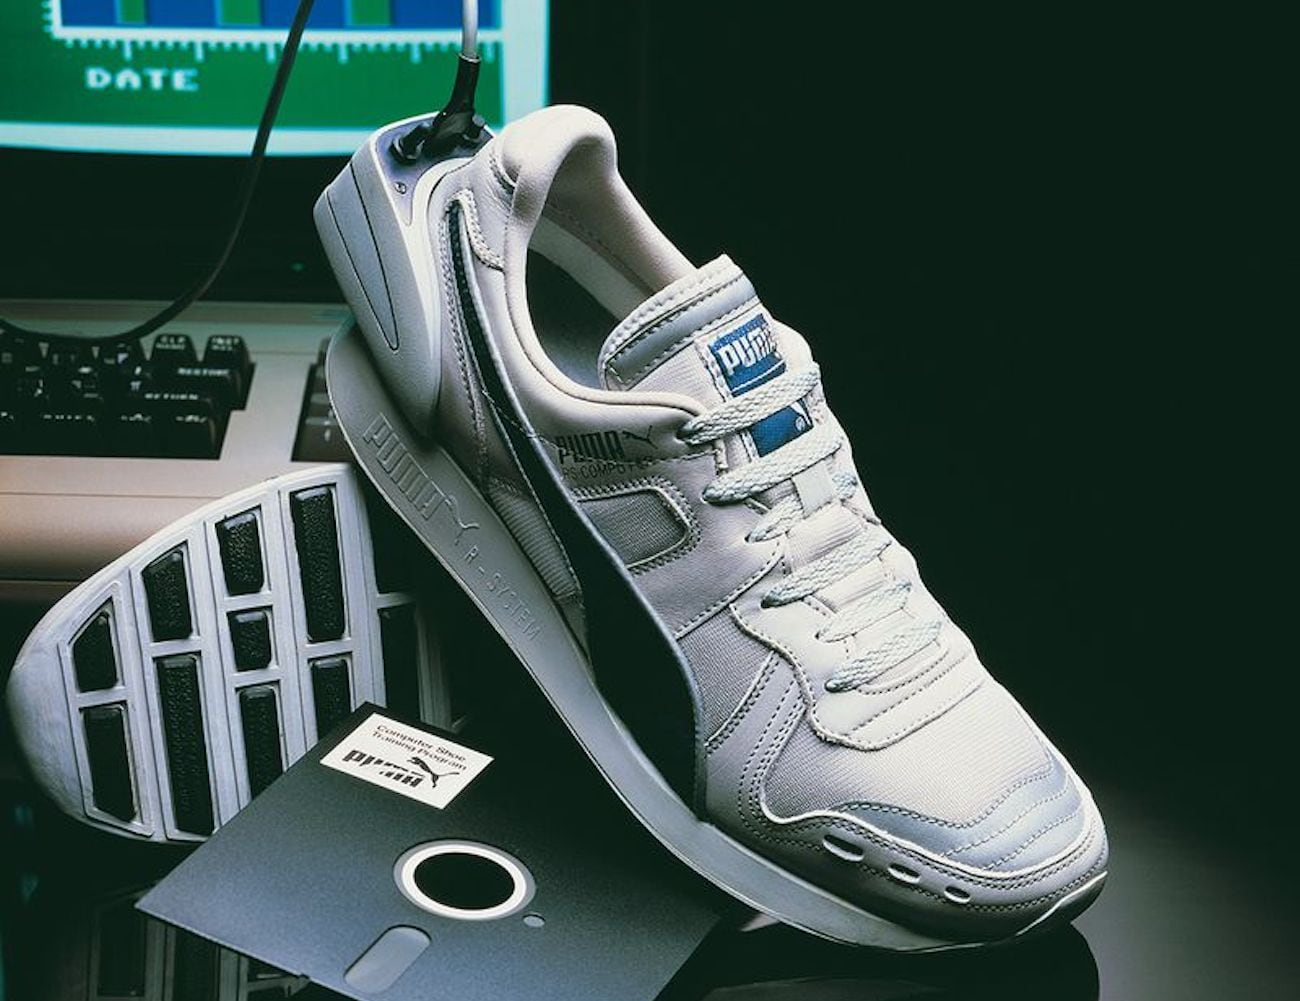 PUMA RS-Computer Computerized Running Shoe